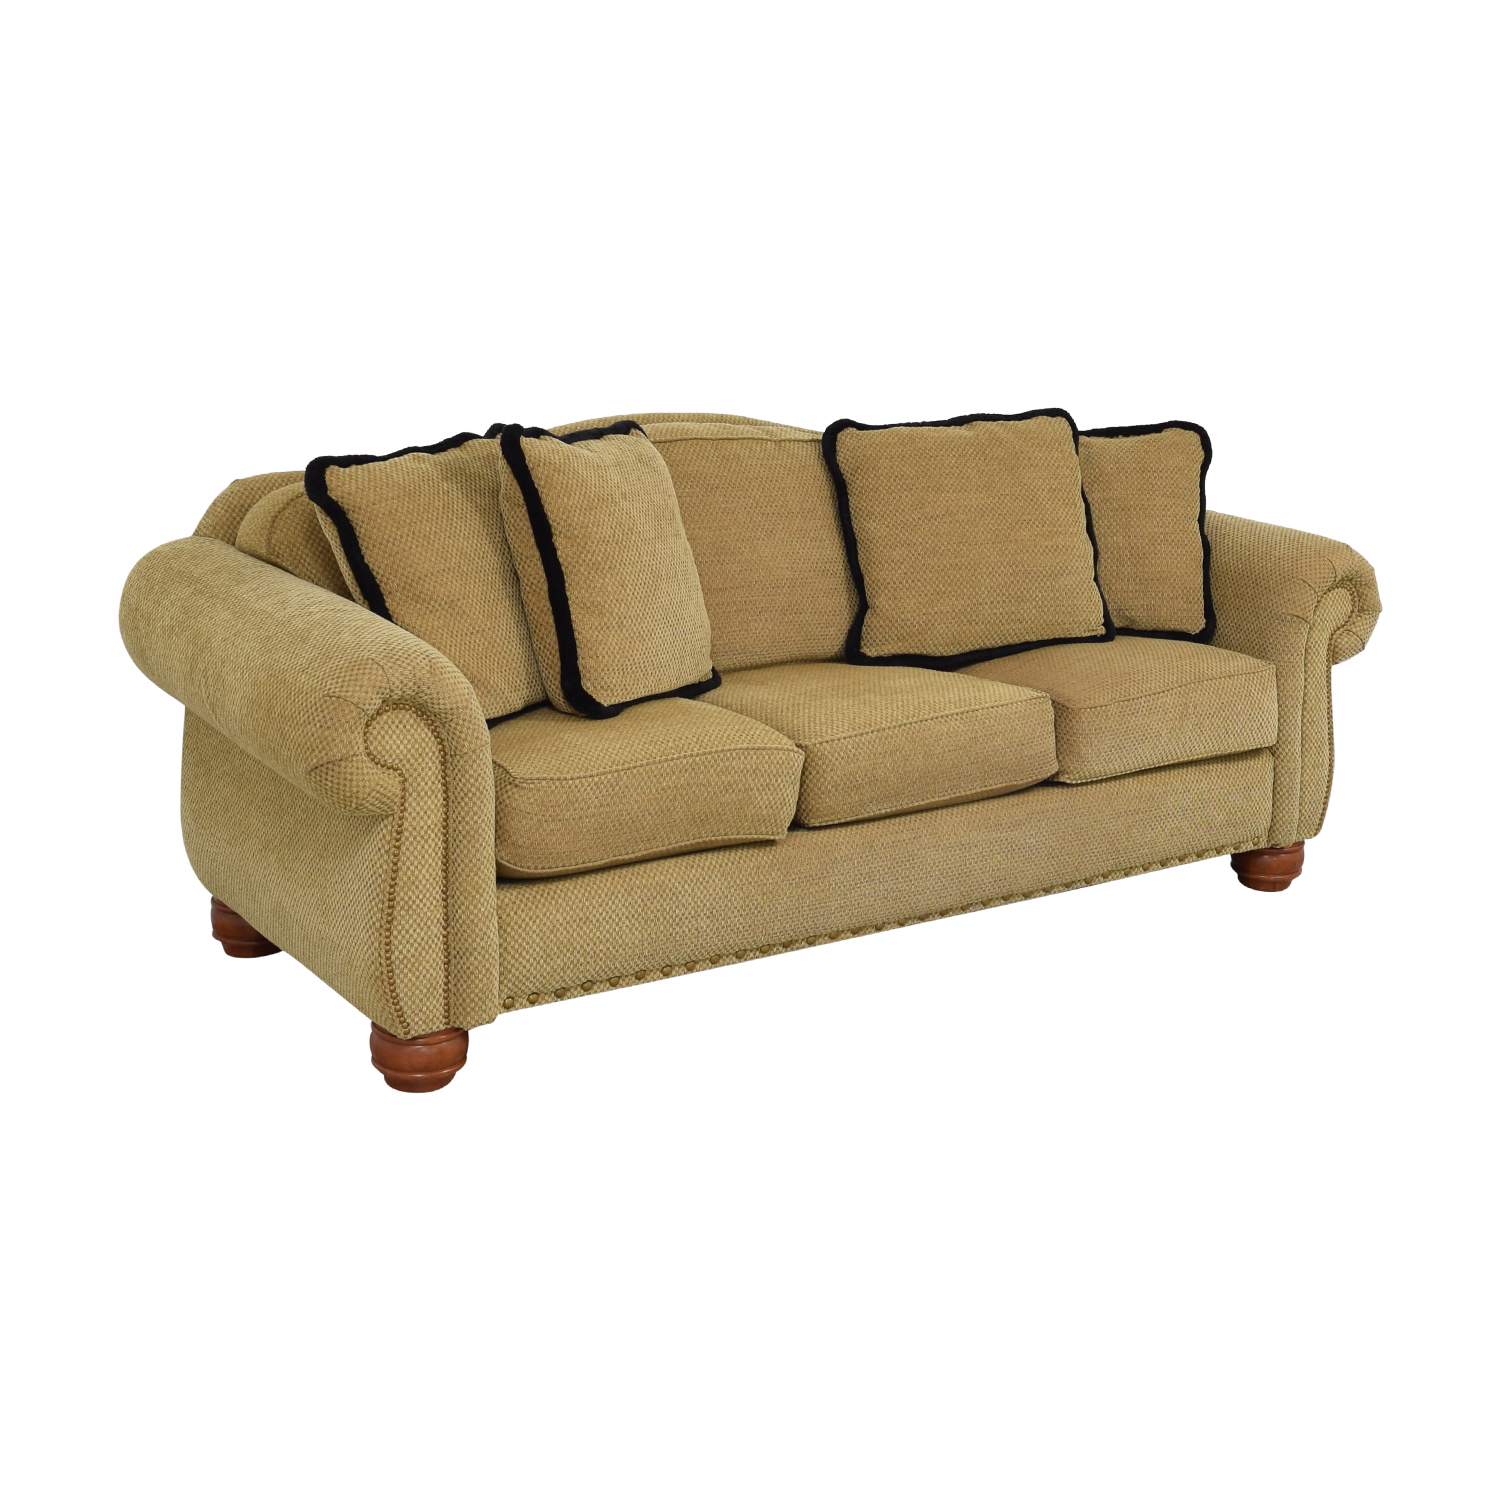 La-Z-Boy Three Cushion Sofa / Classic Sofas